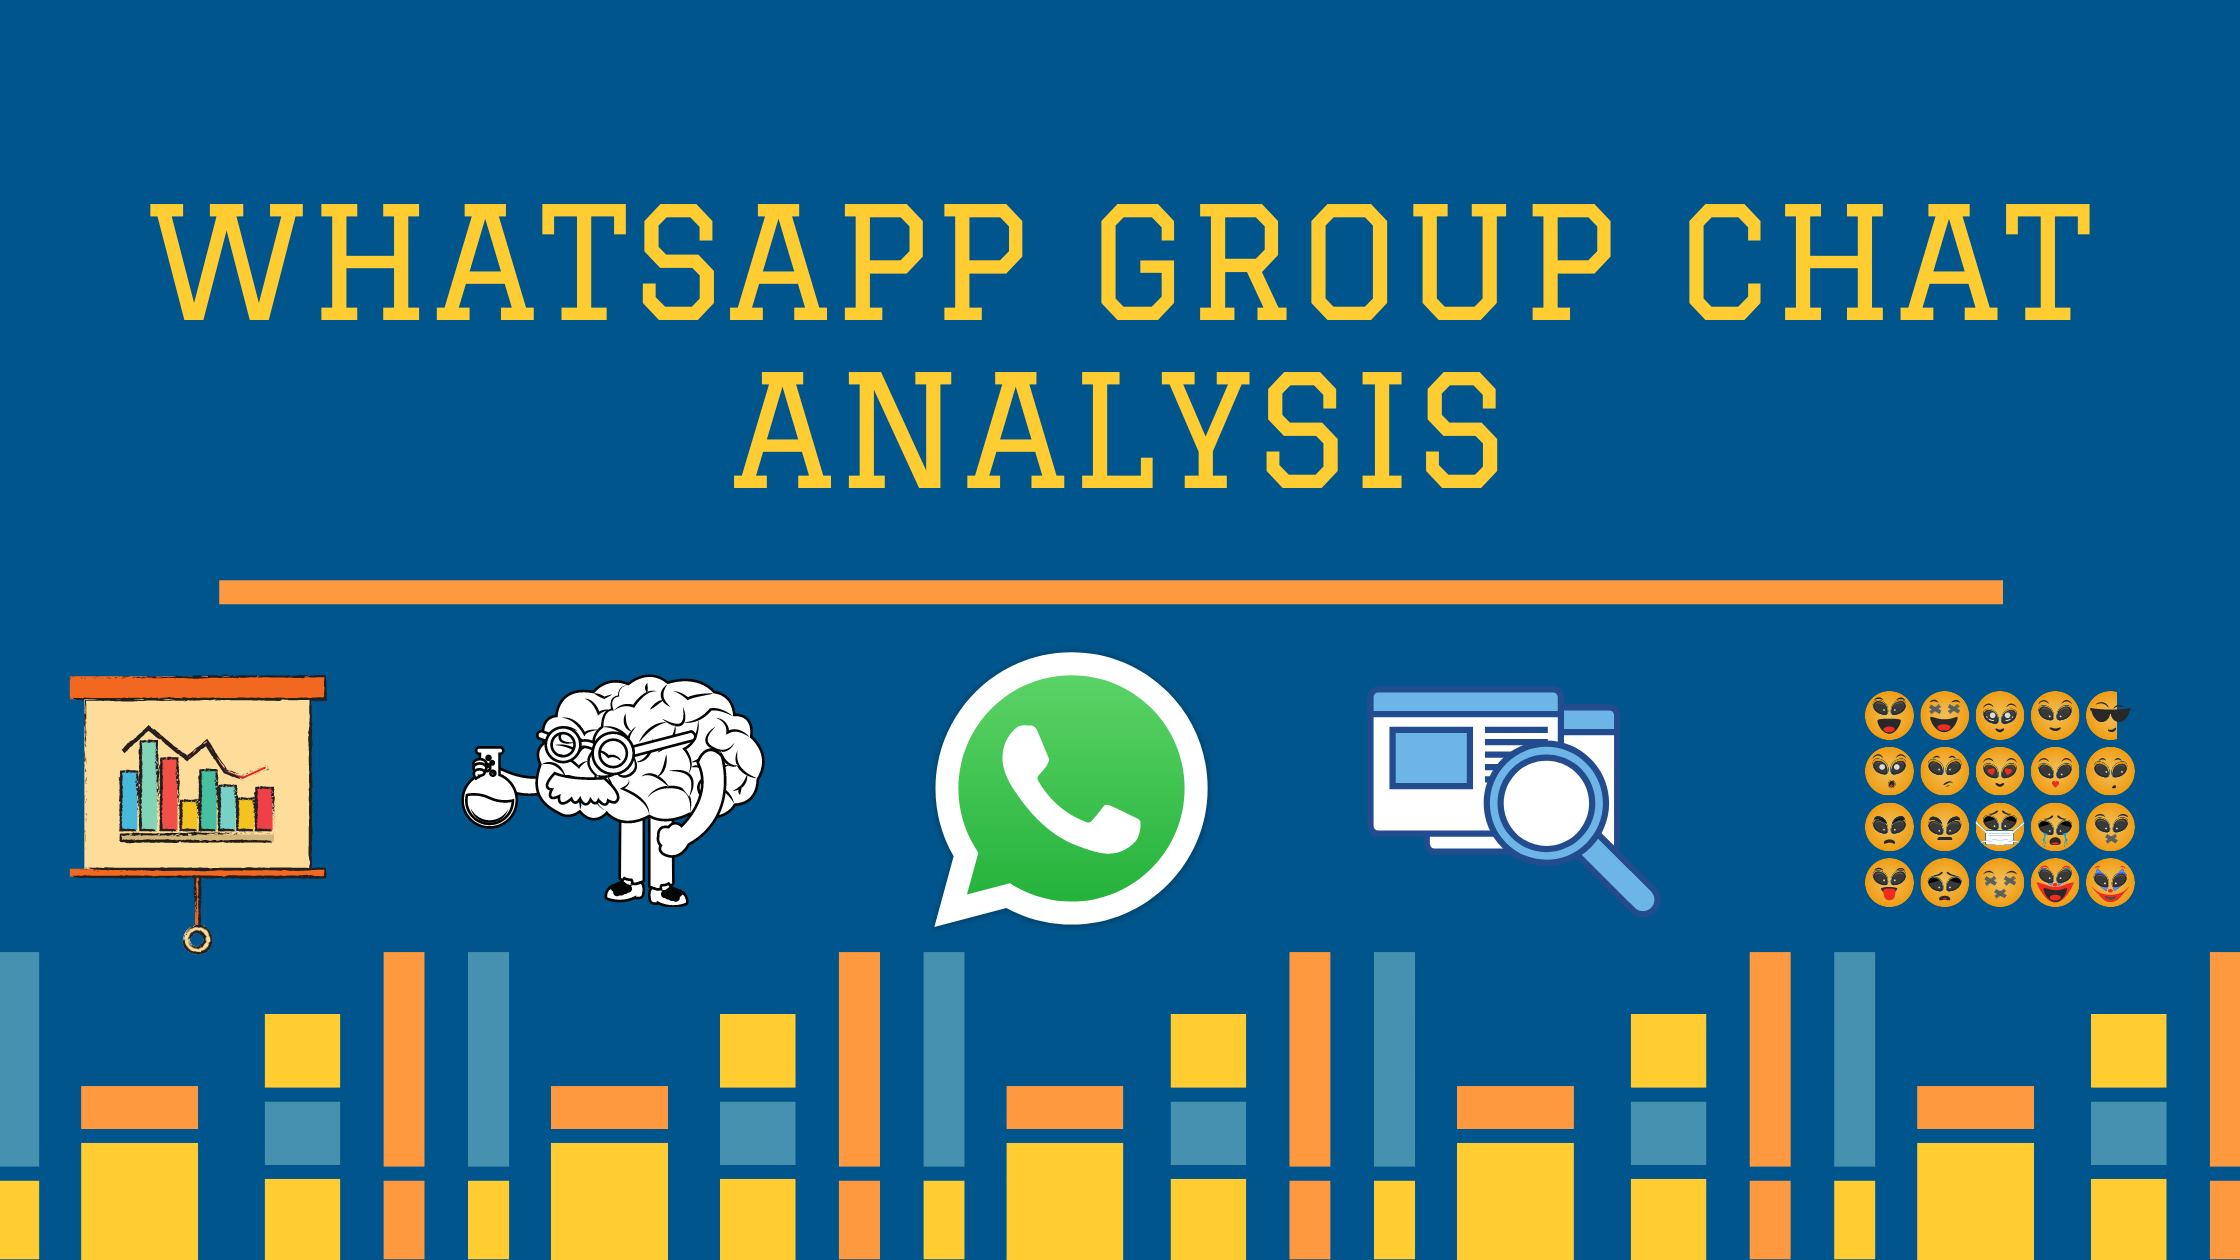 Whatsapp Group Chat Analysis using Python and Plotly